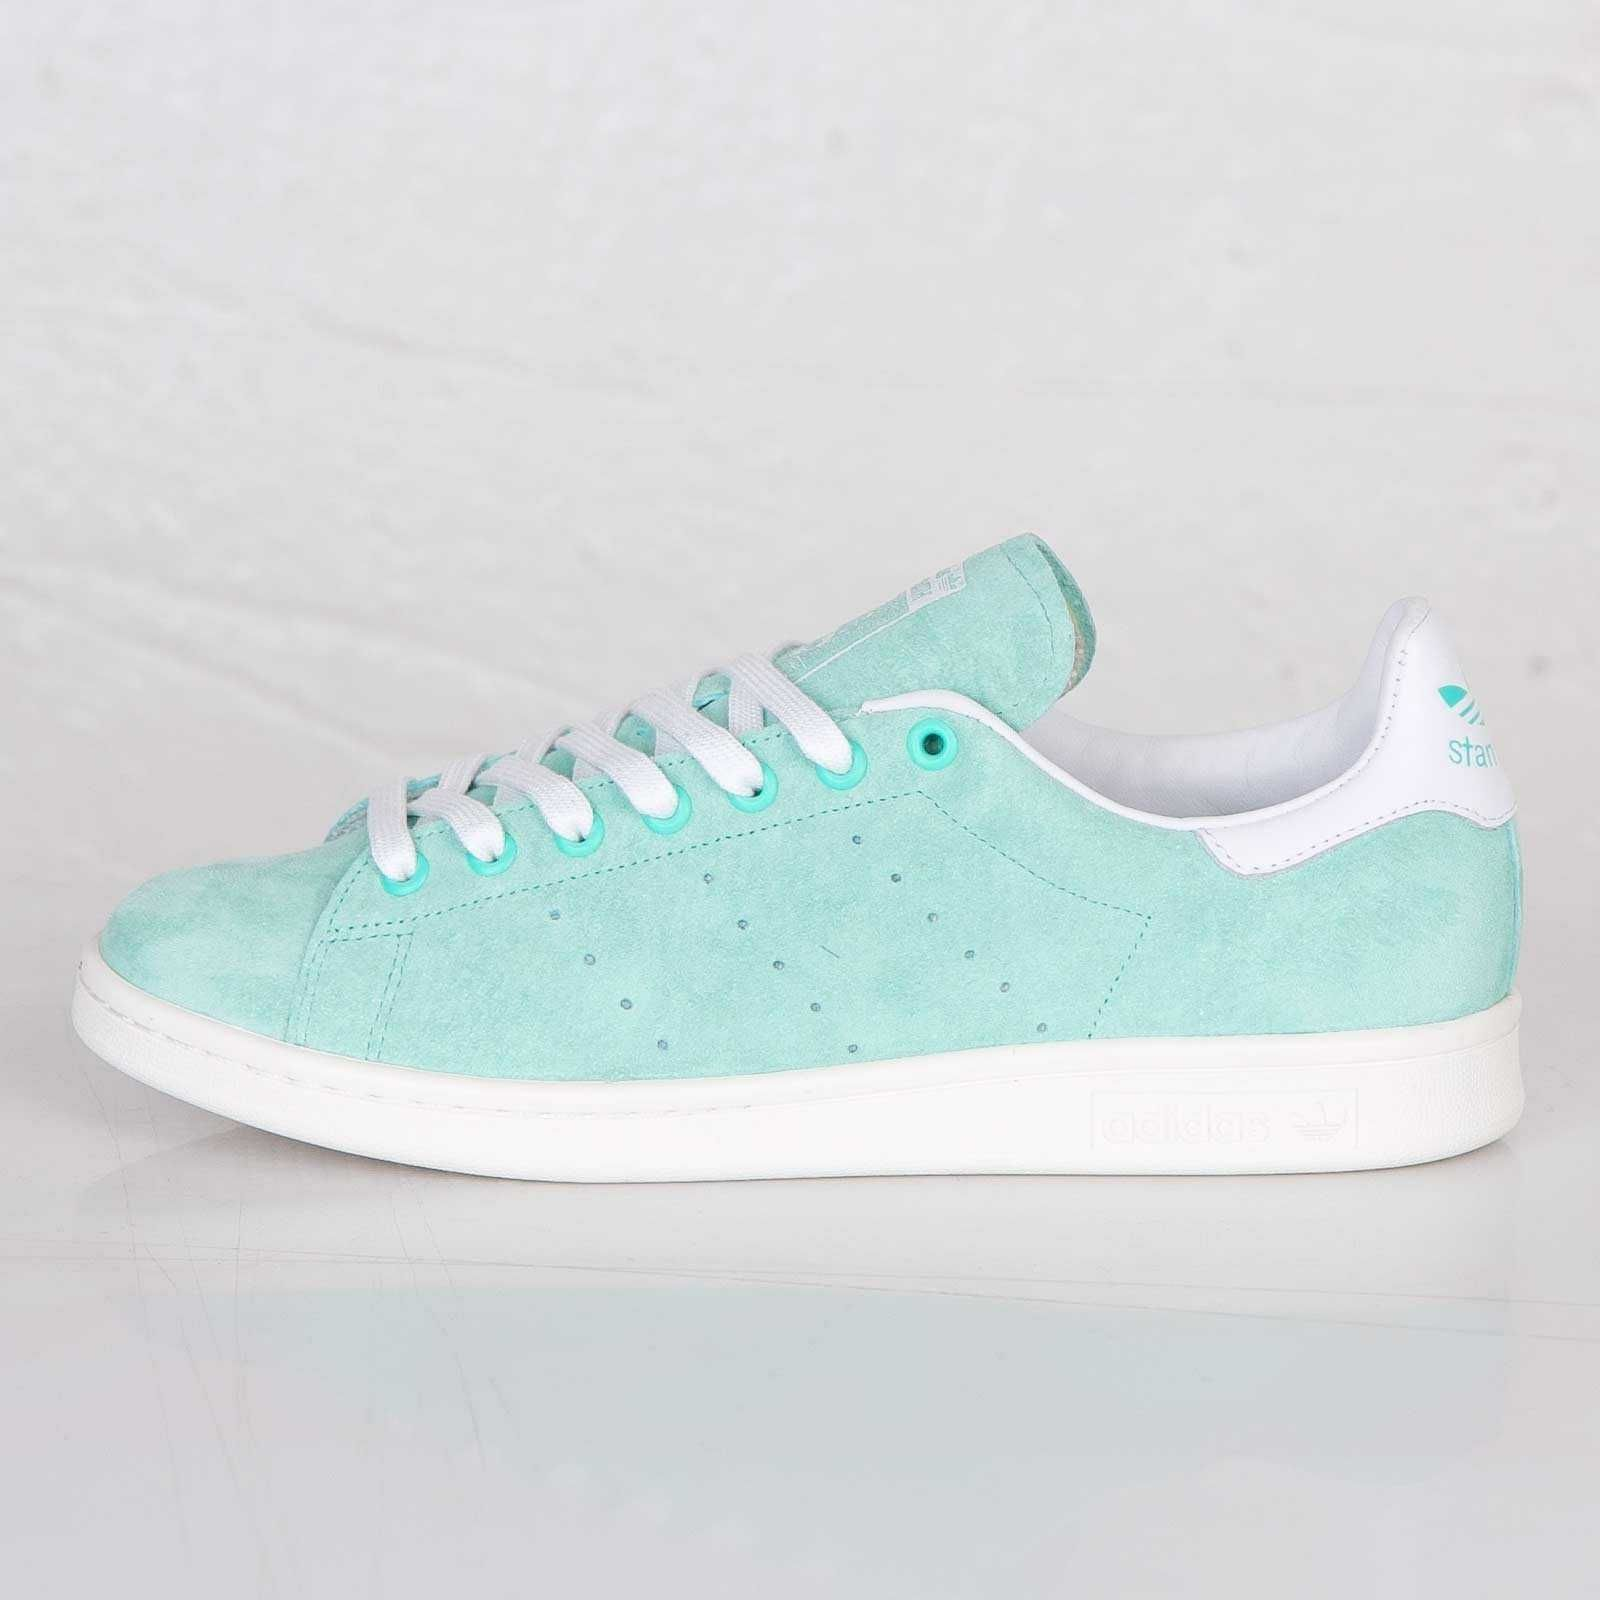 adidas stan smith dam grön